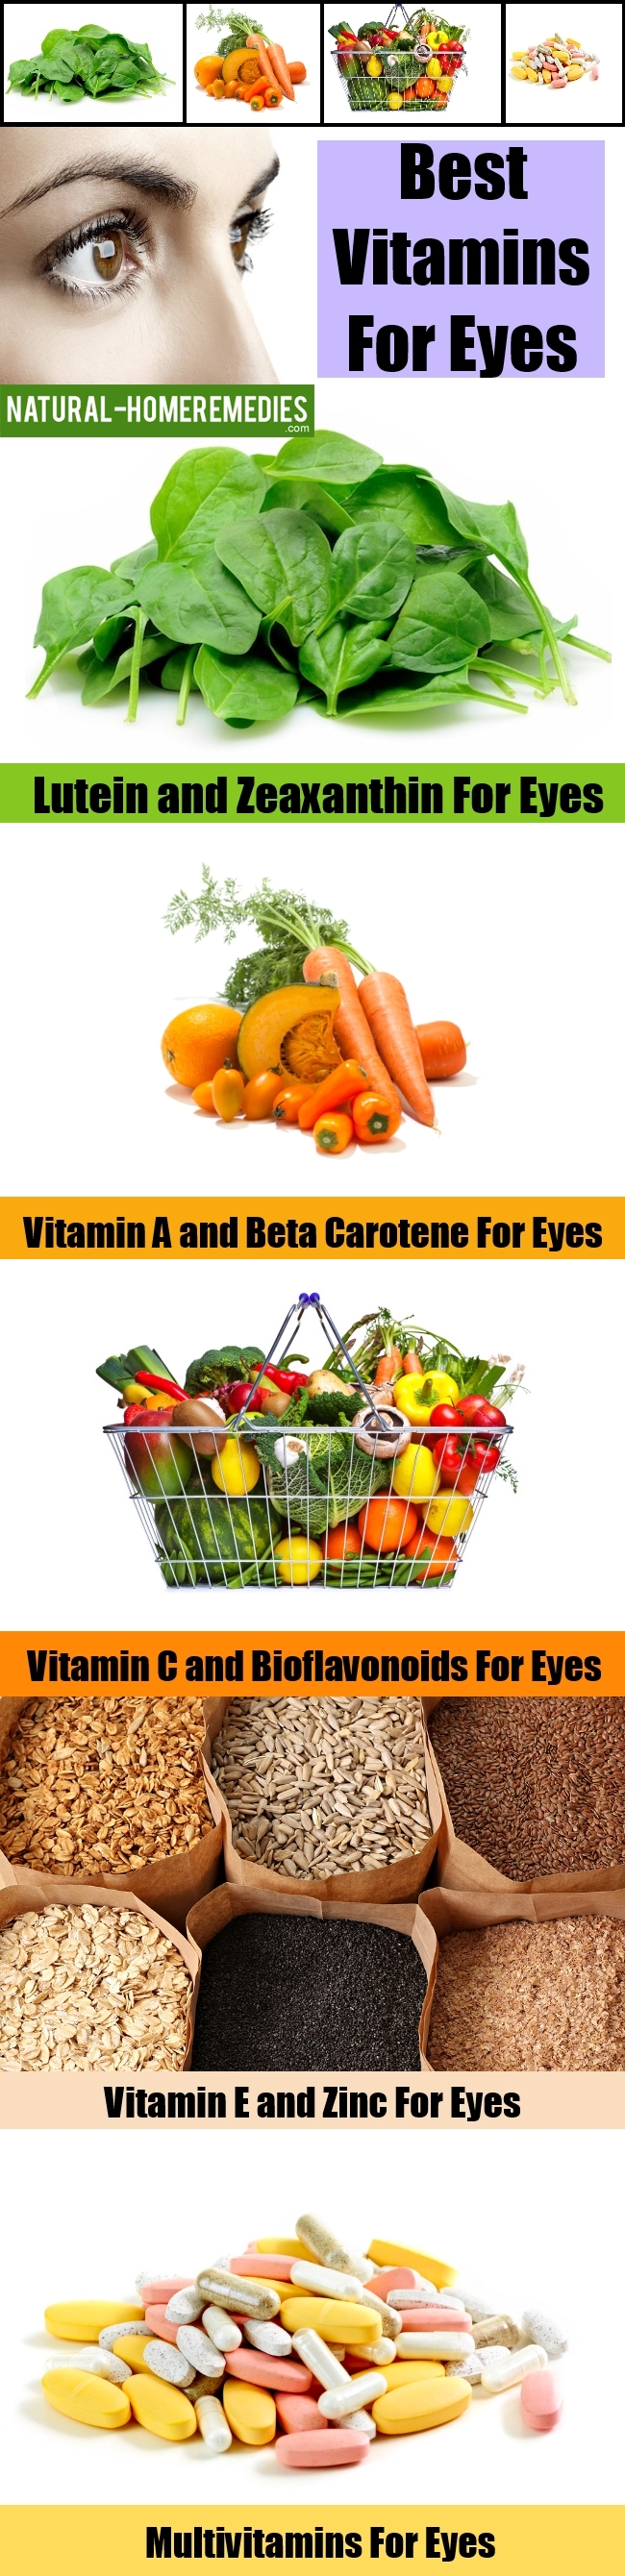 Best Vitamins For Eyes